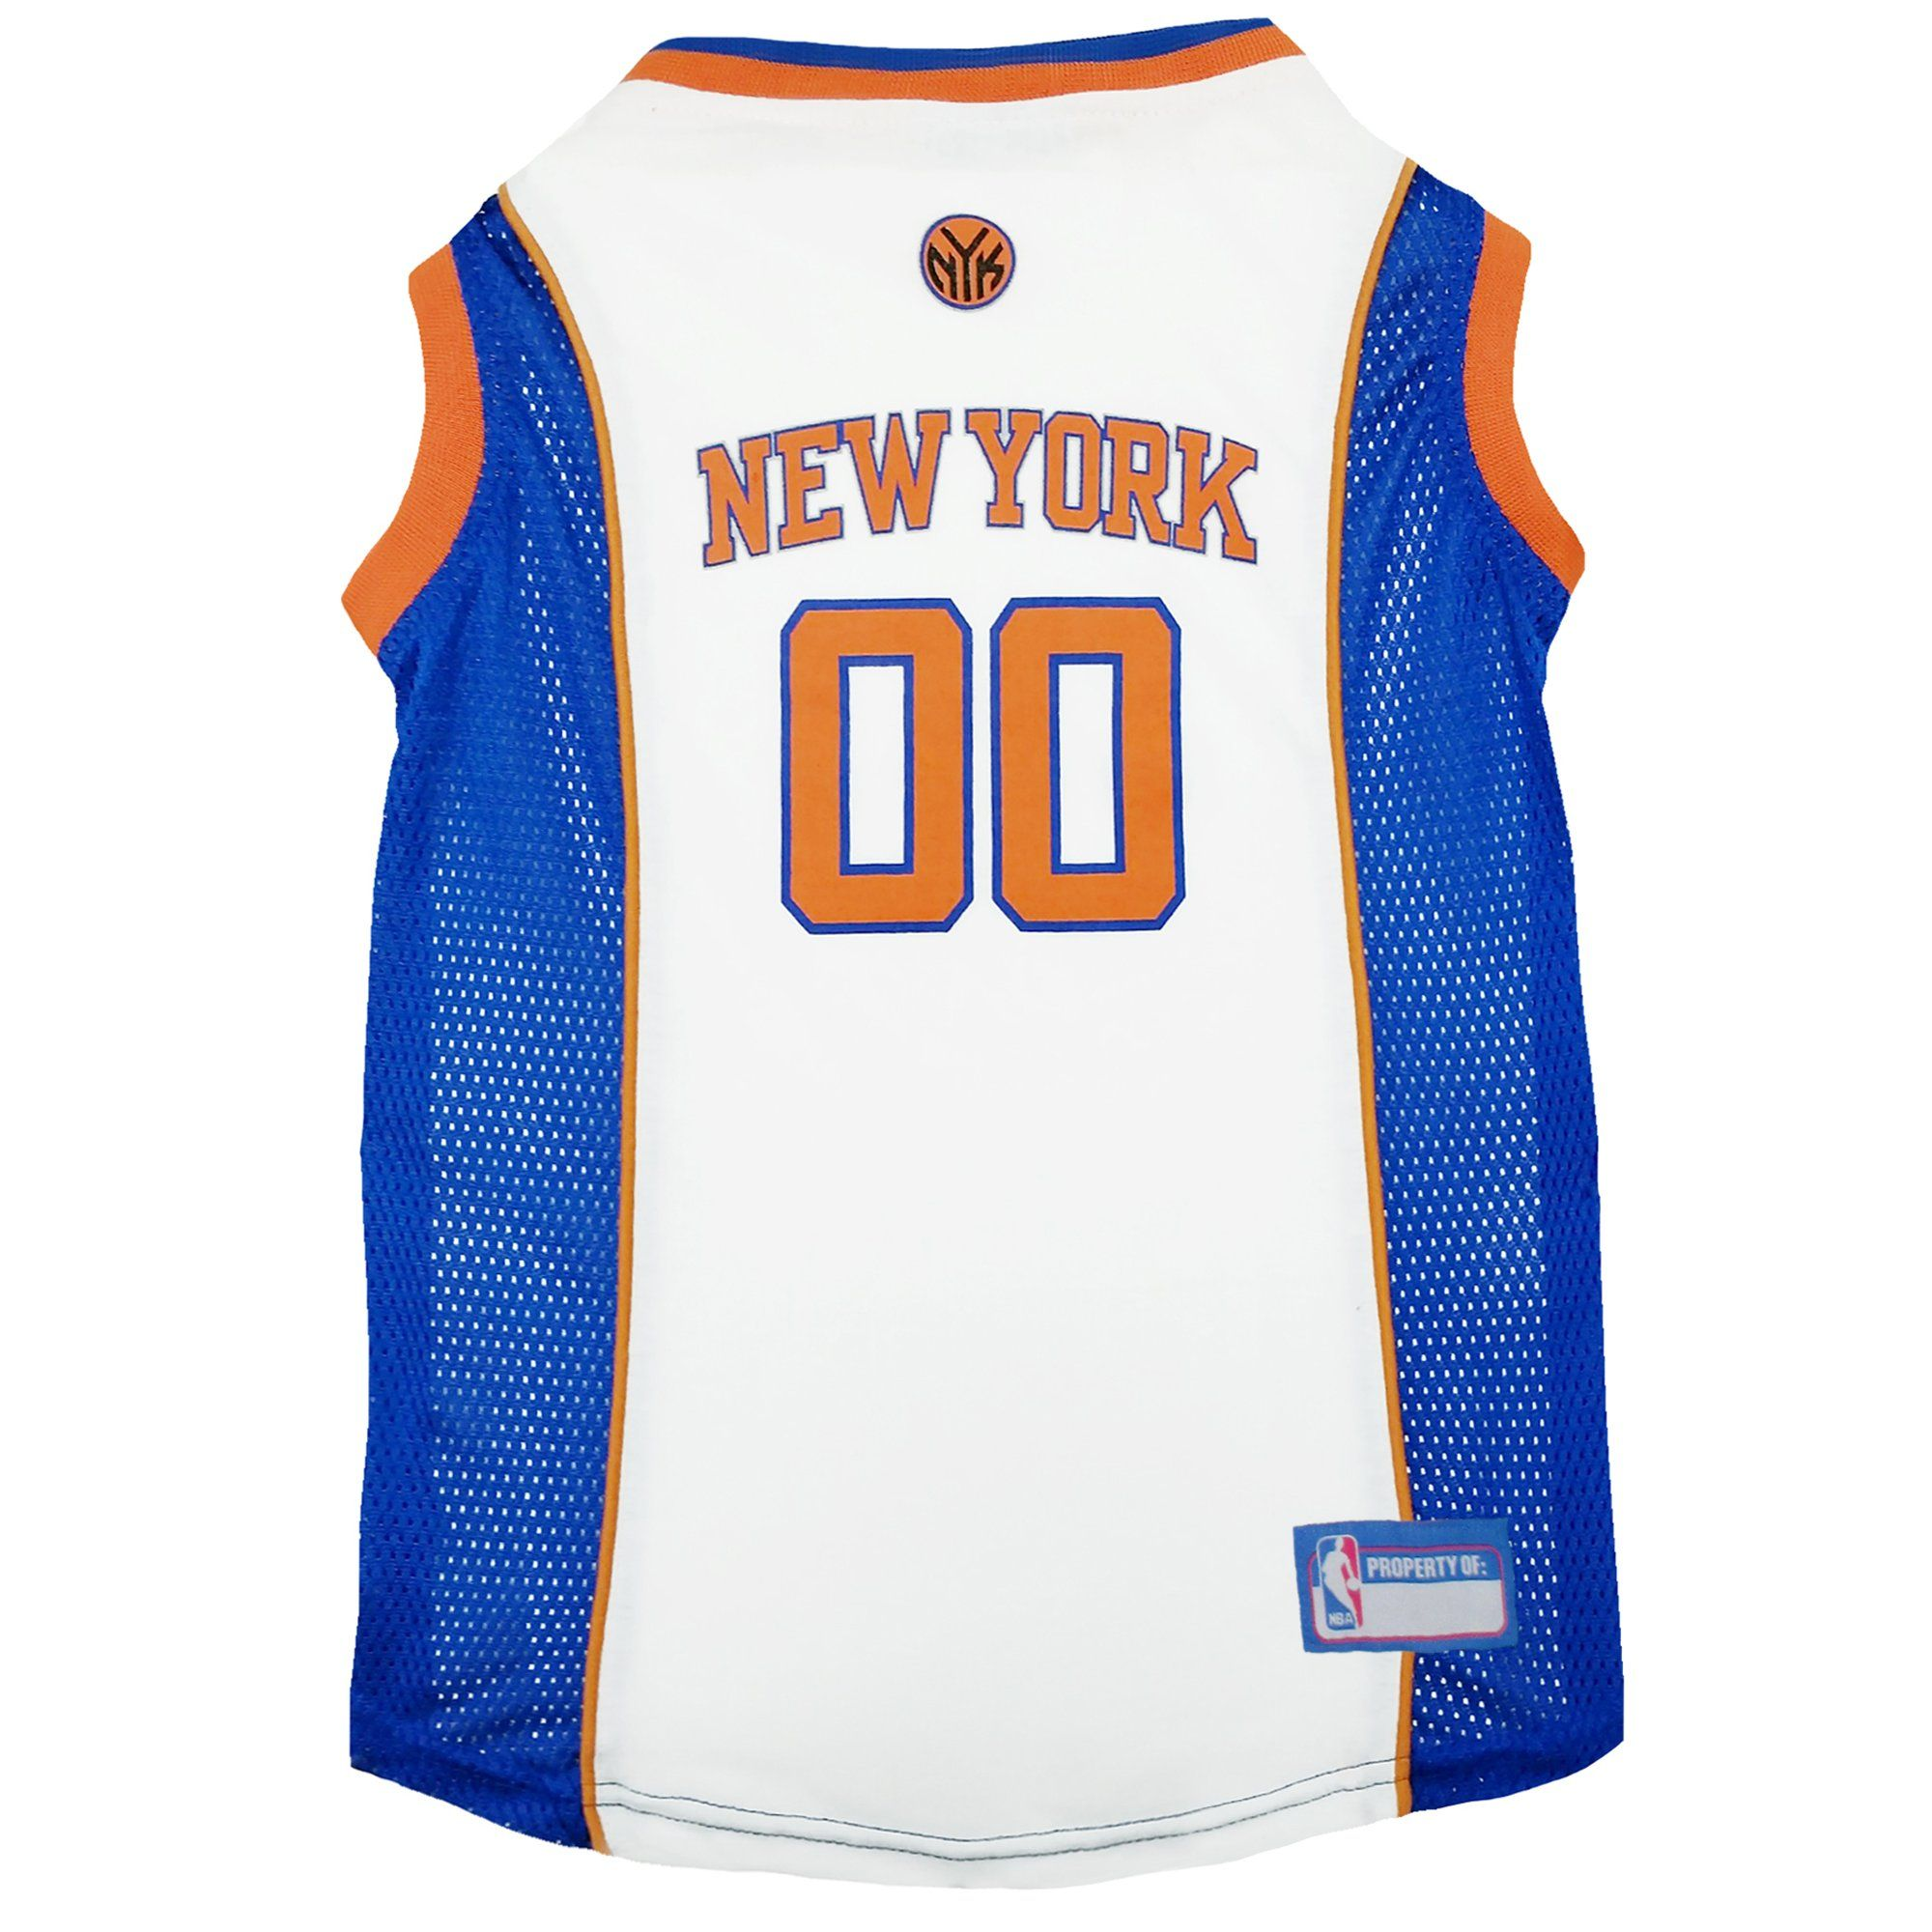 Pets First New York Knicks NBA Mesh Jersey for Dogs, X